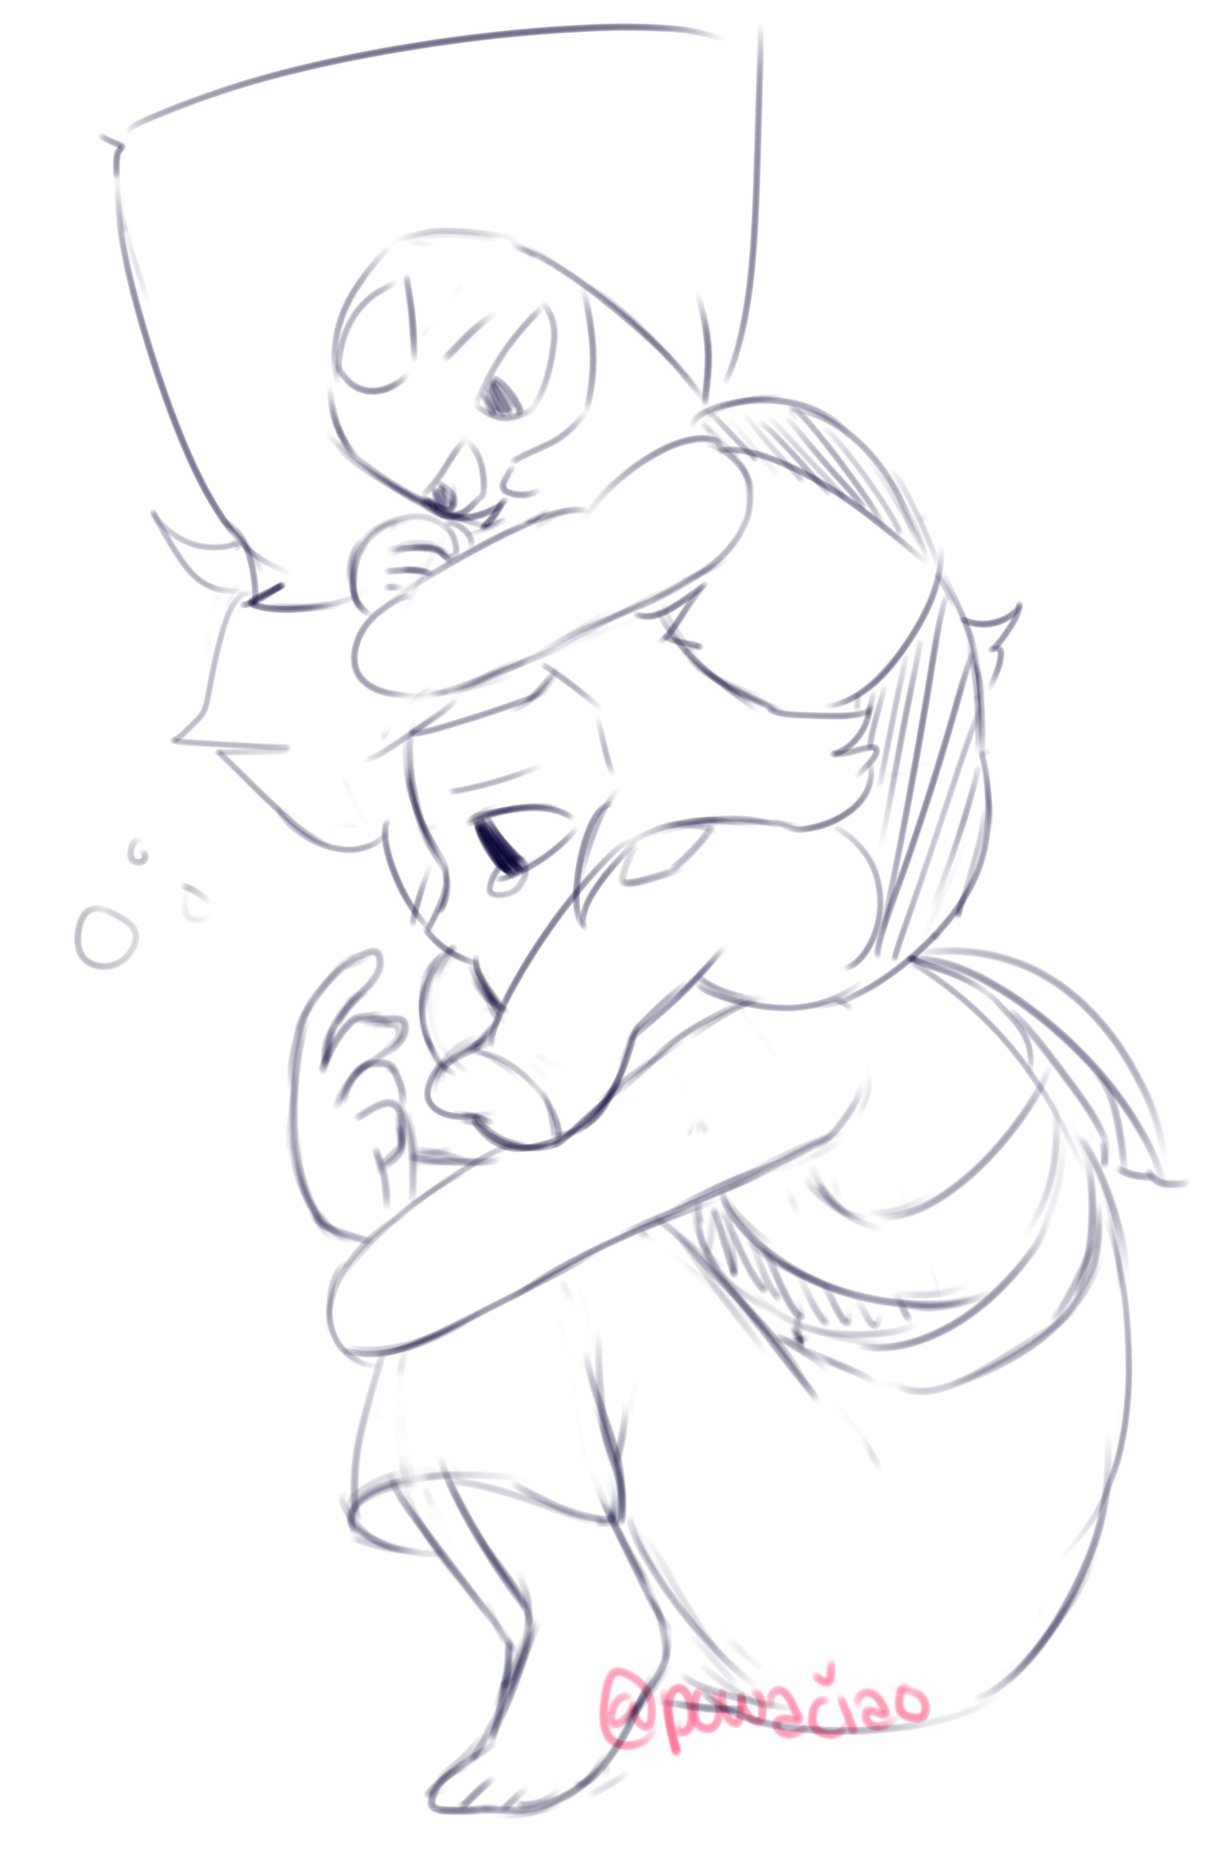 """Lapidot Comfort cuddles ♡ lil cheerup doodle for @aloezaki ily mom !!"""